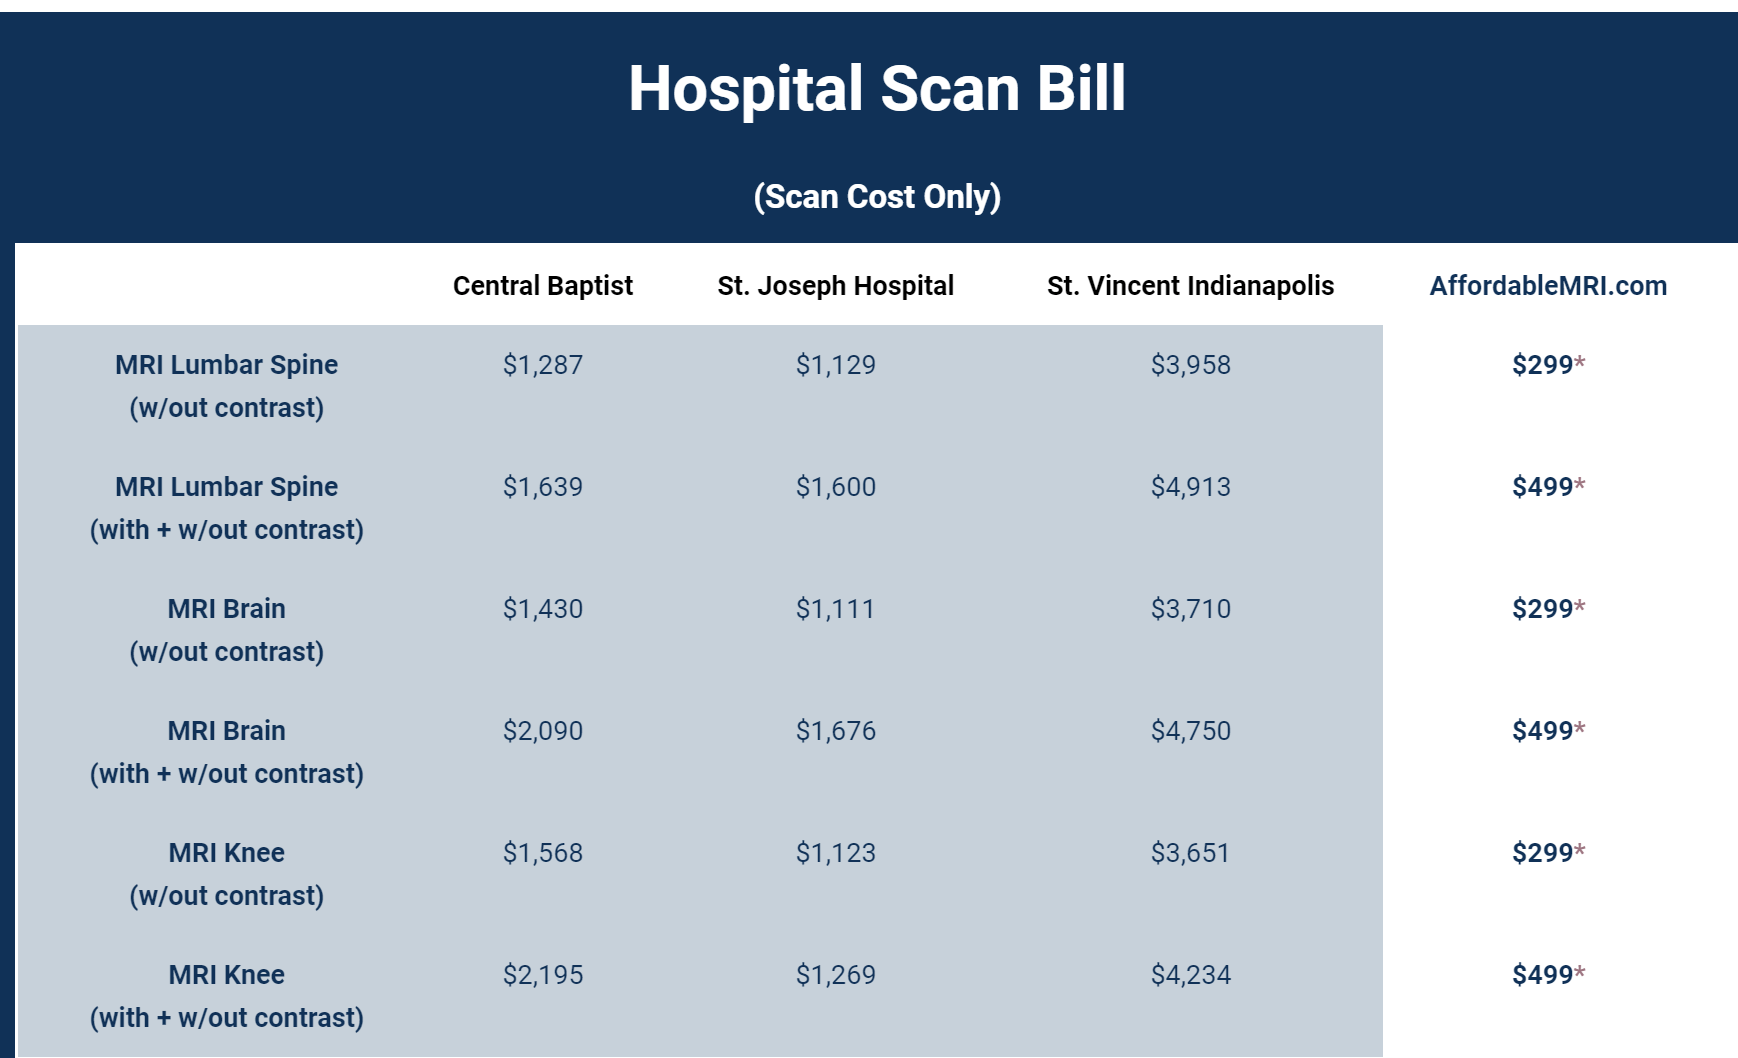 Affordable MRI pricing